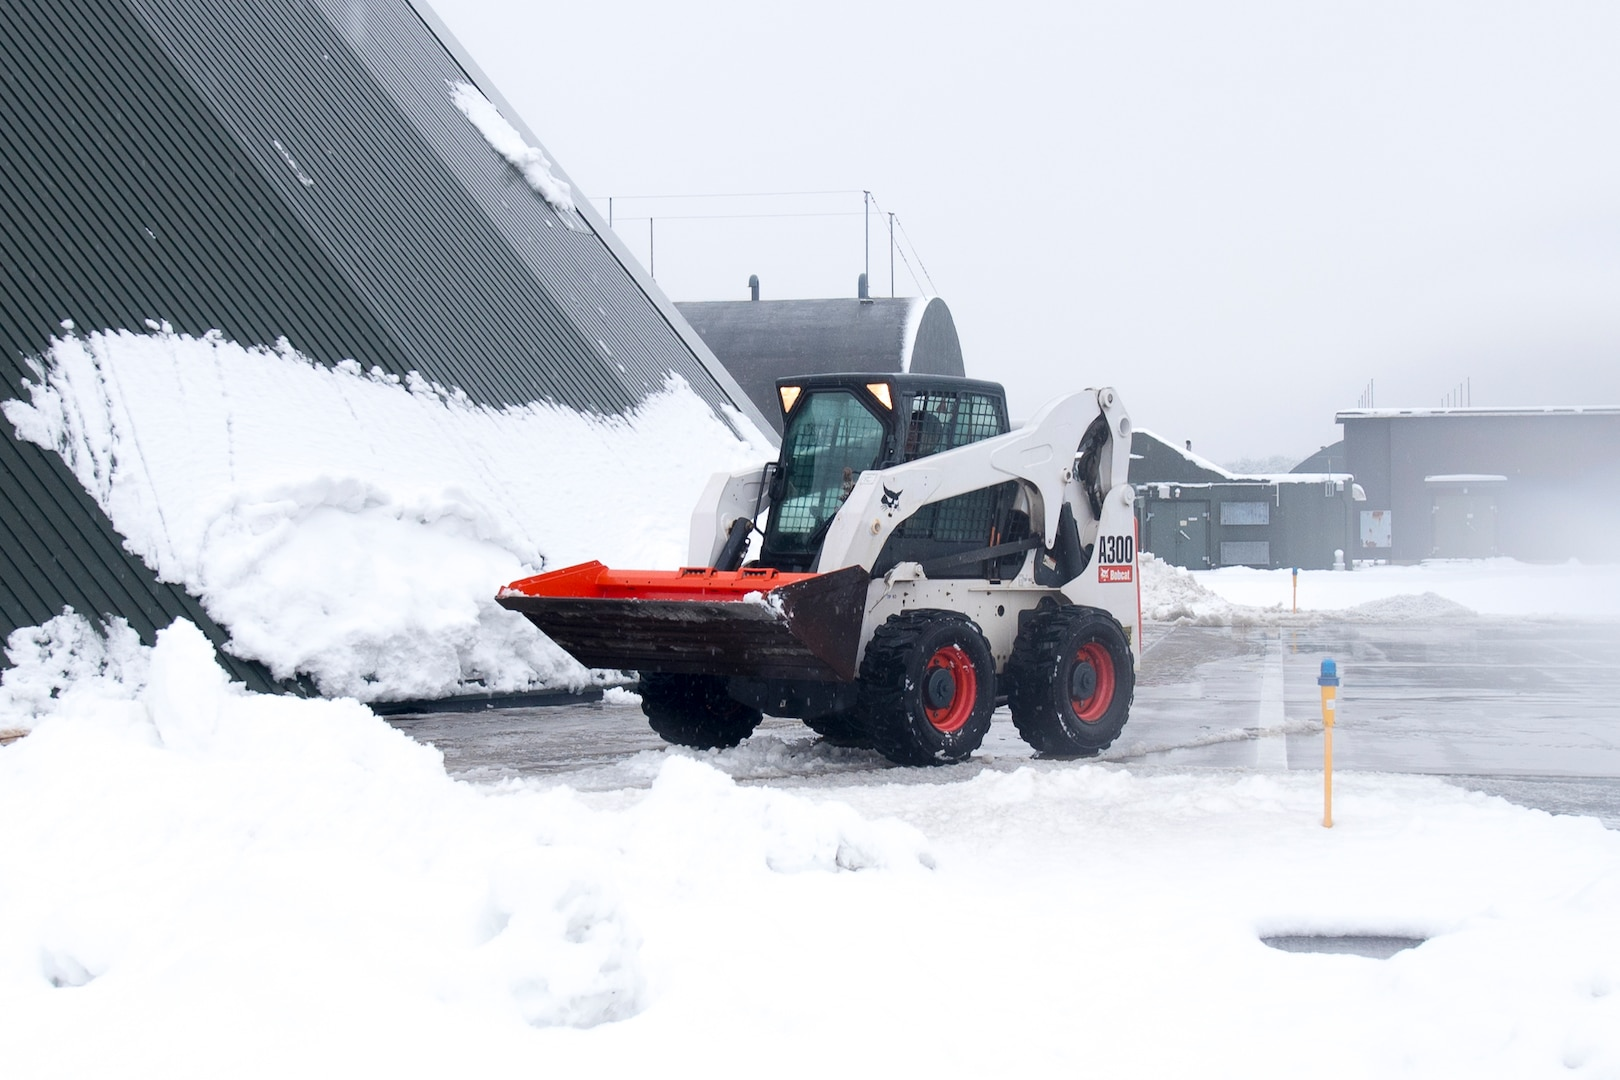 Engineers, Airfield Managers Fight Snowy Weather, Keep Misawa Runway Open